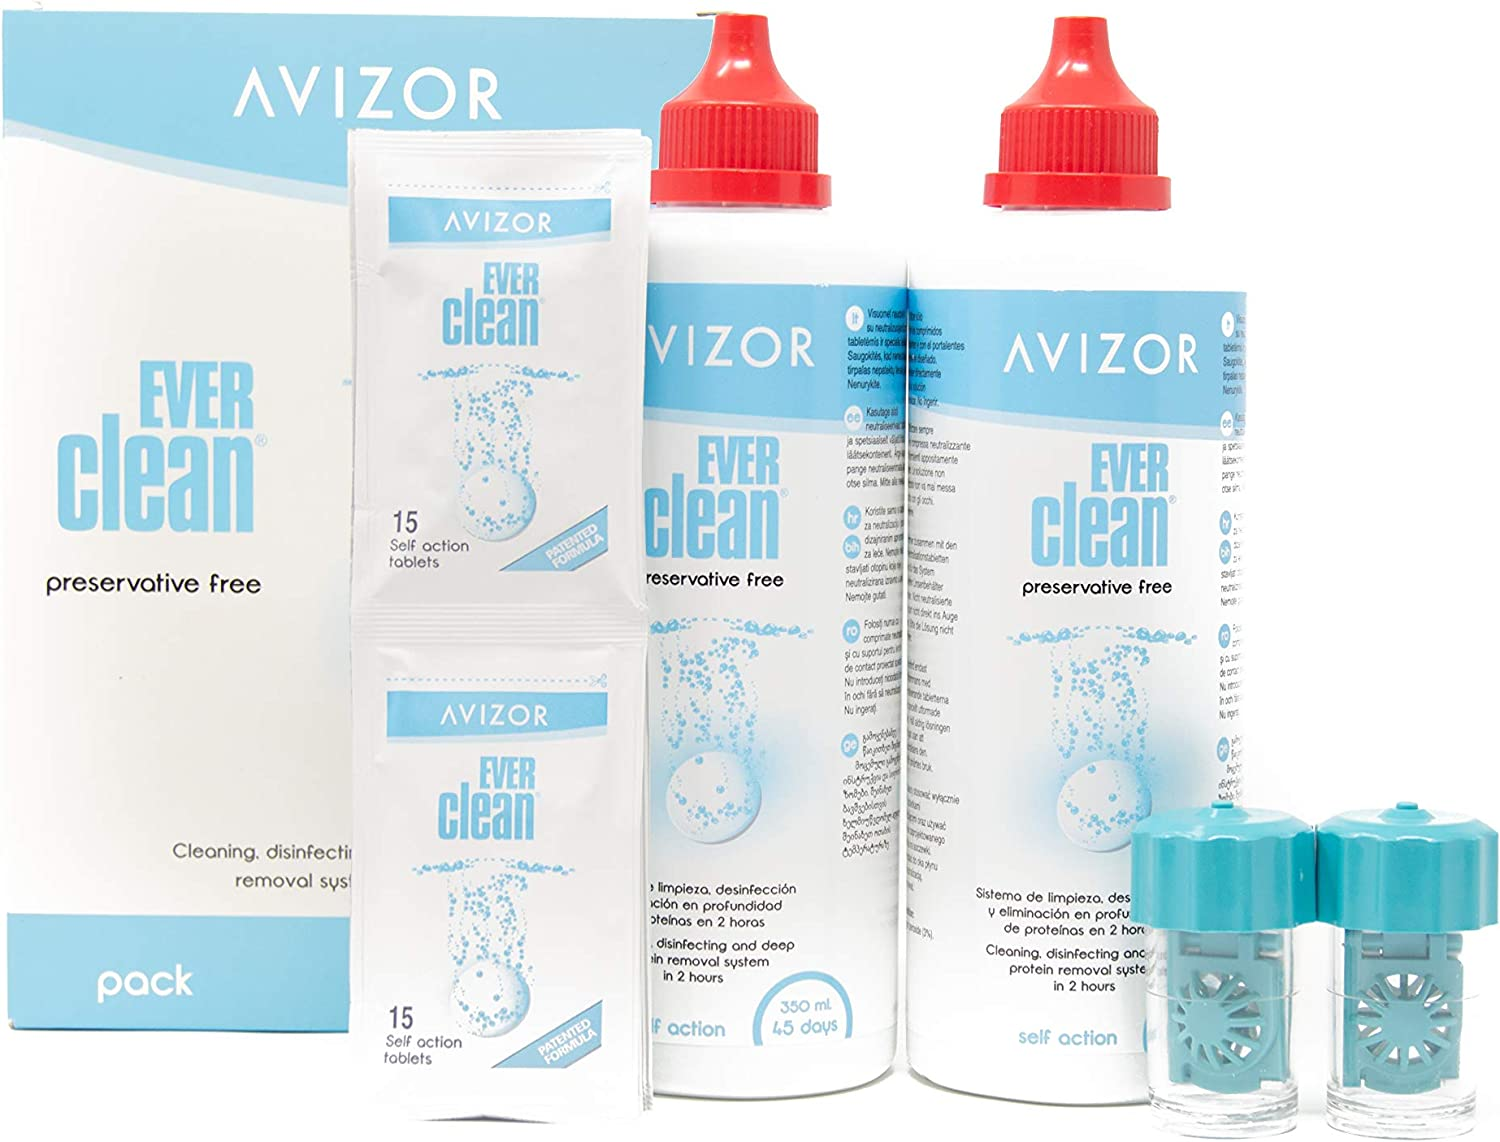 NEW before selling ☆ Recommendation Avizor Ever Clean Without Preservative an Cleaning Disinfecting